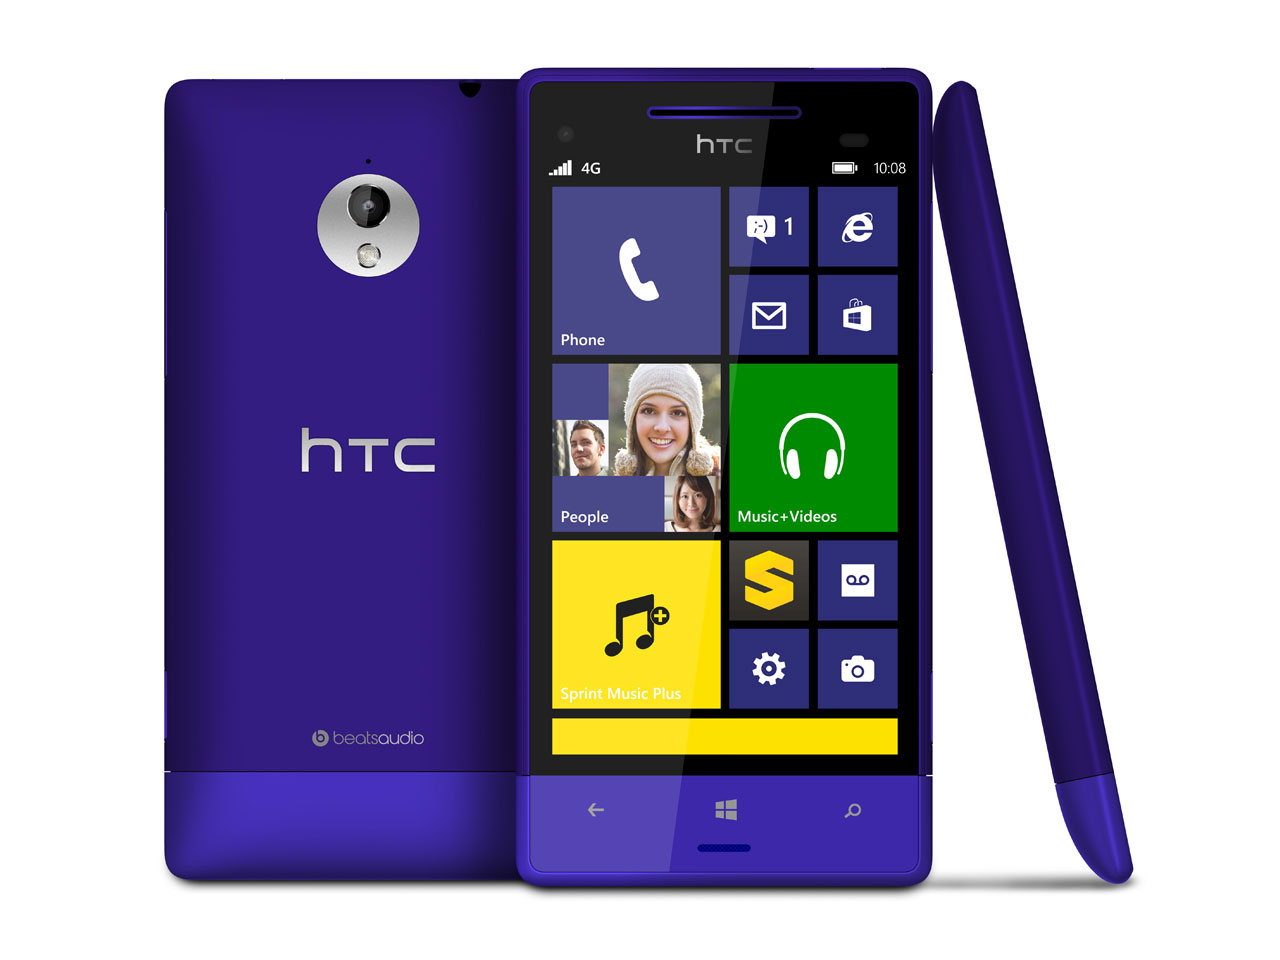 Htc windows phone 8xt blue 4g windows 8 phone sprint pcs for Window 4g phone